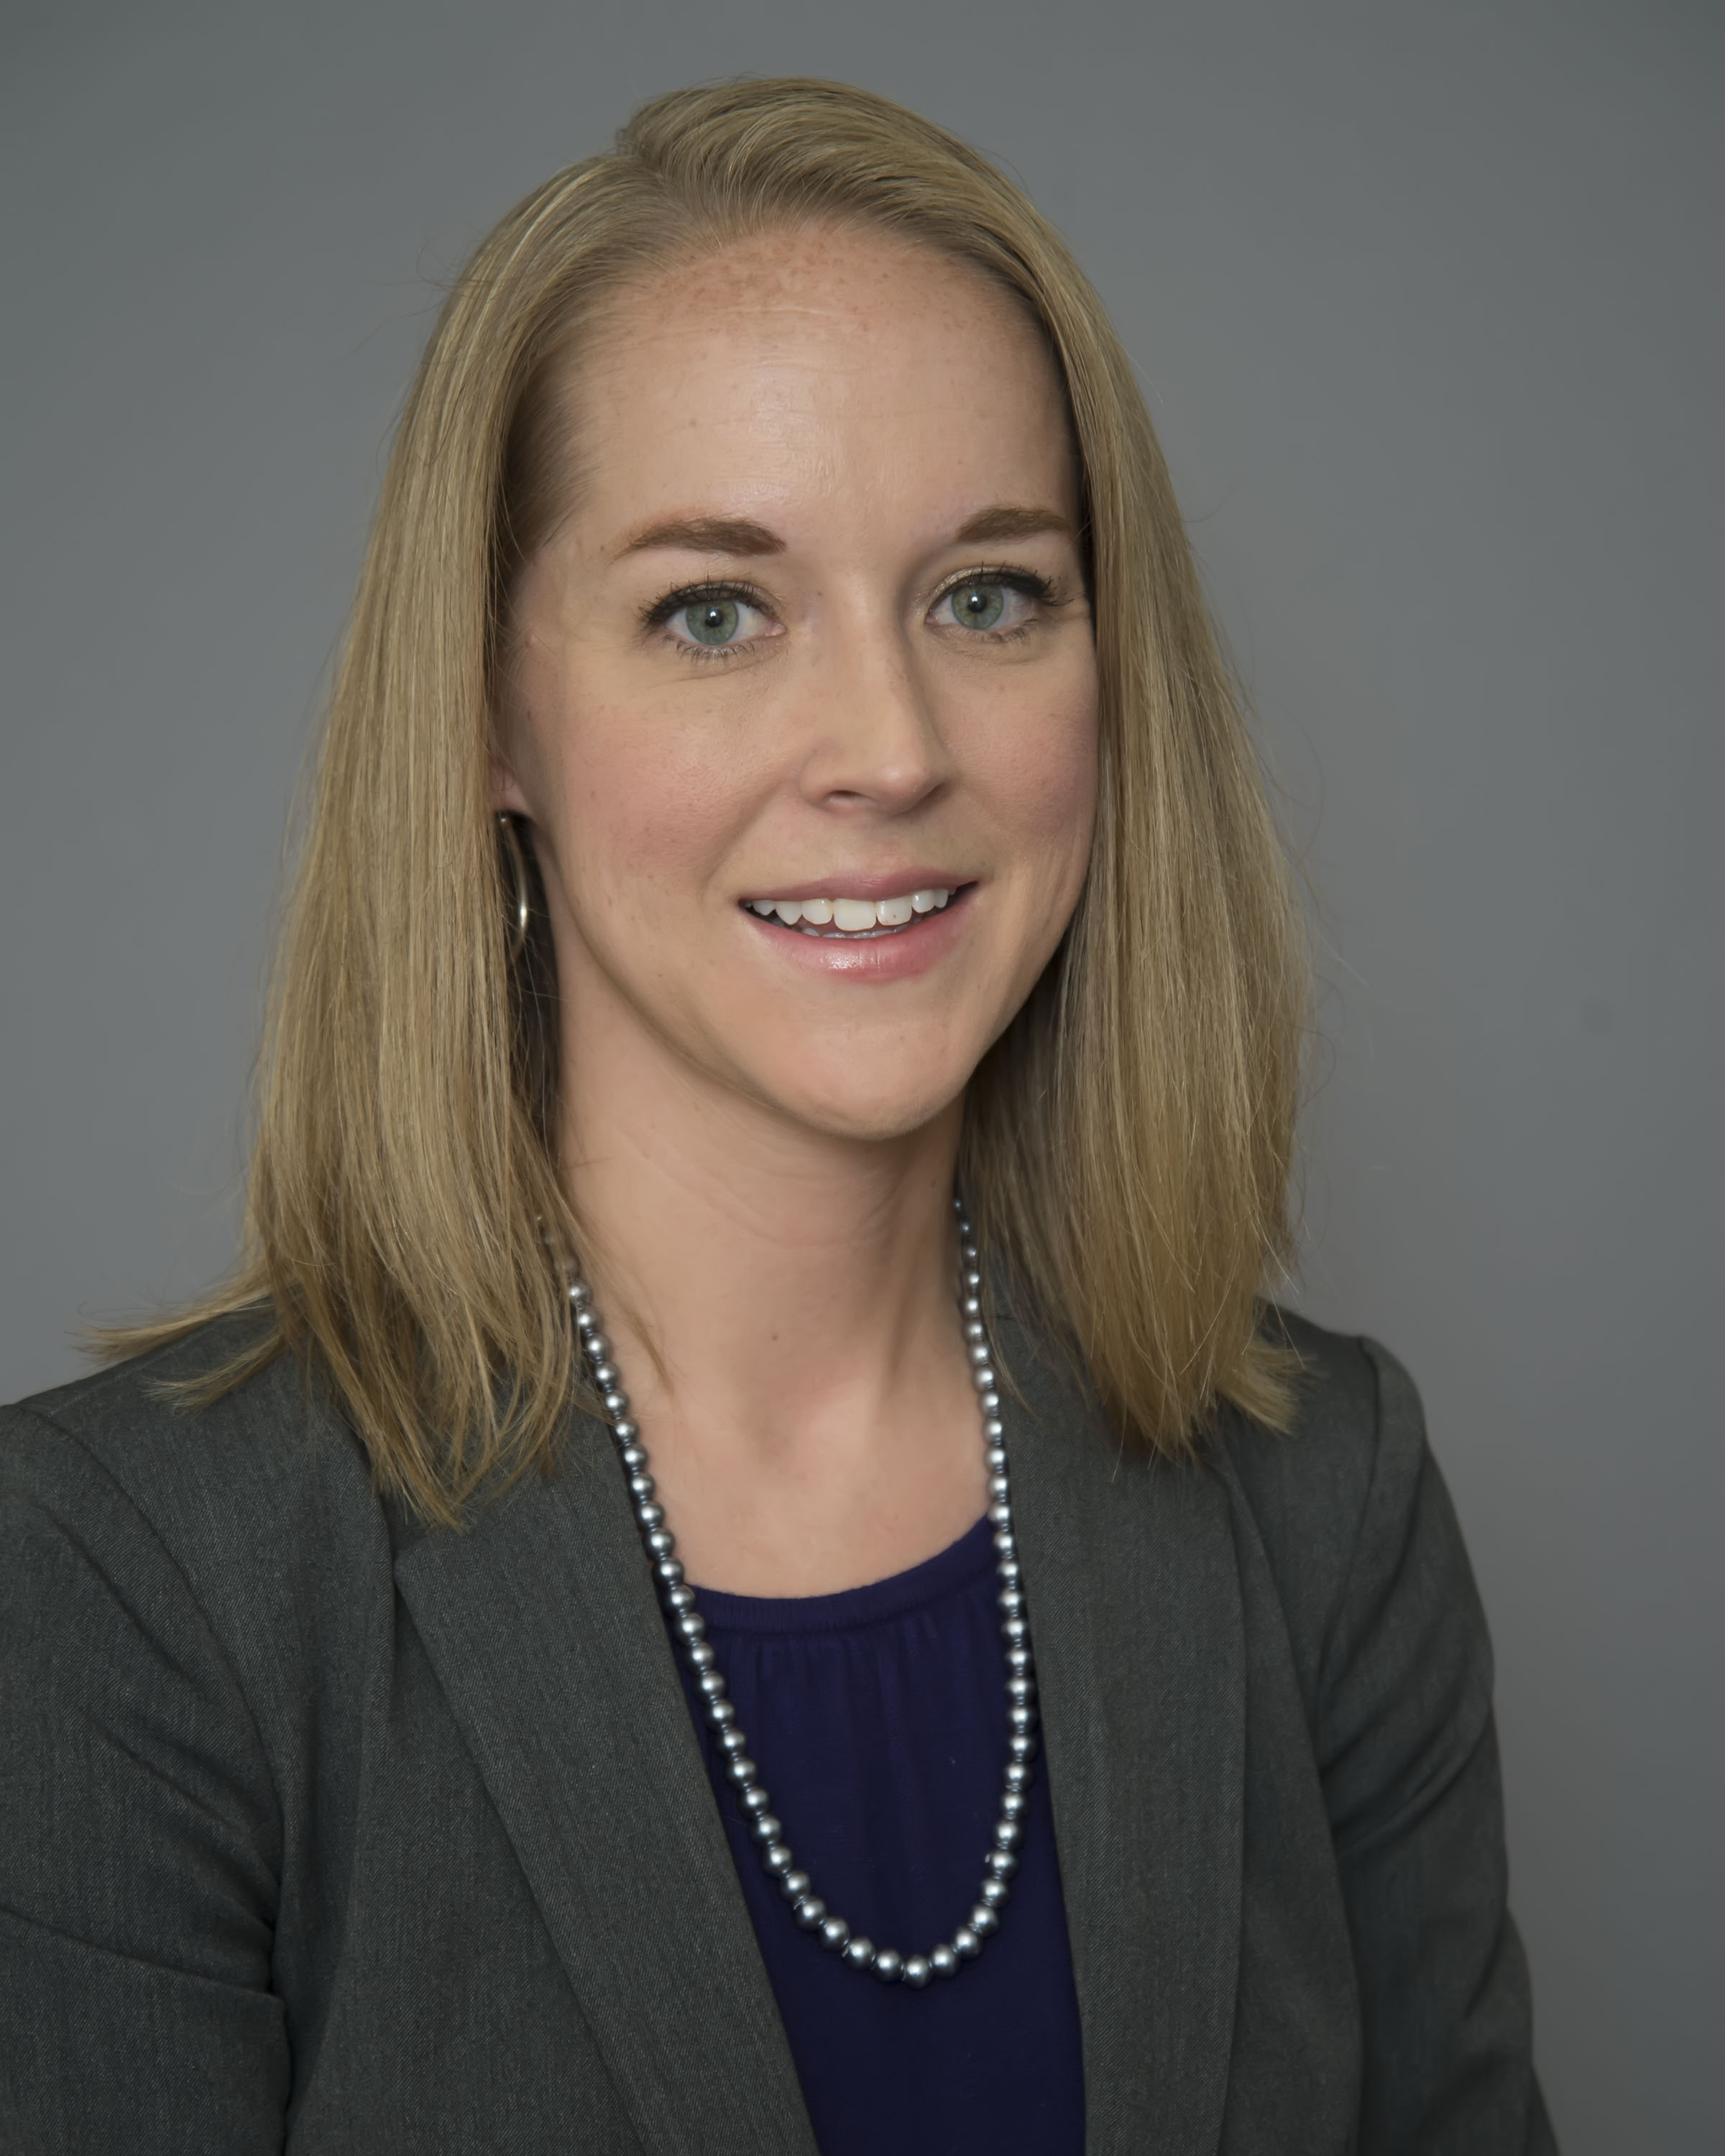 Board of physical therapy - Dr Ashley Mason Of The Marshall University School Of Physical Therapy Has Received Board Certification With A Specialty In Pediatrics Through The American